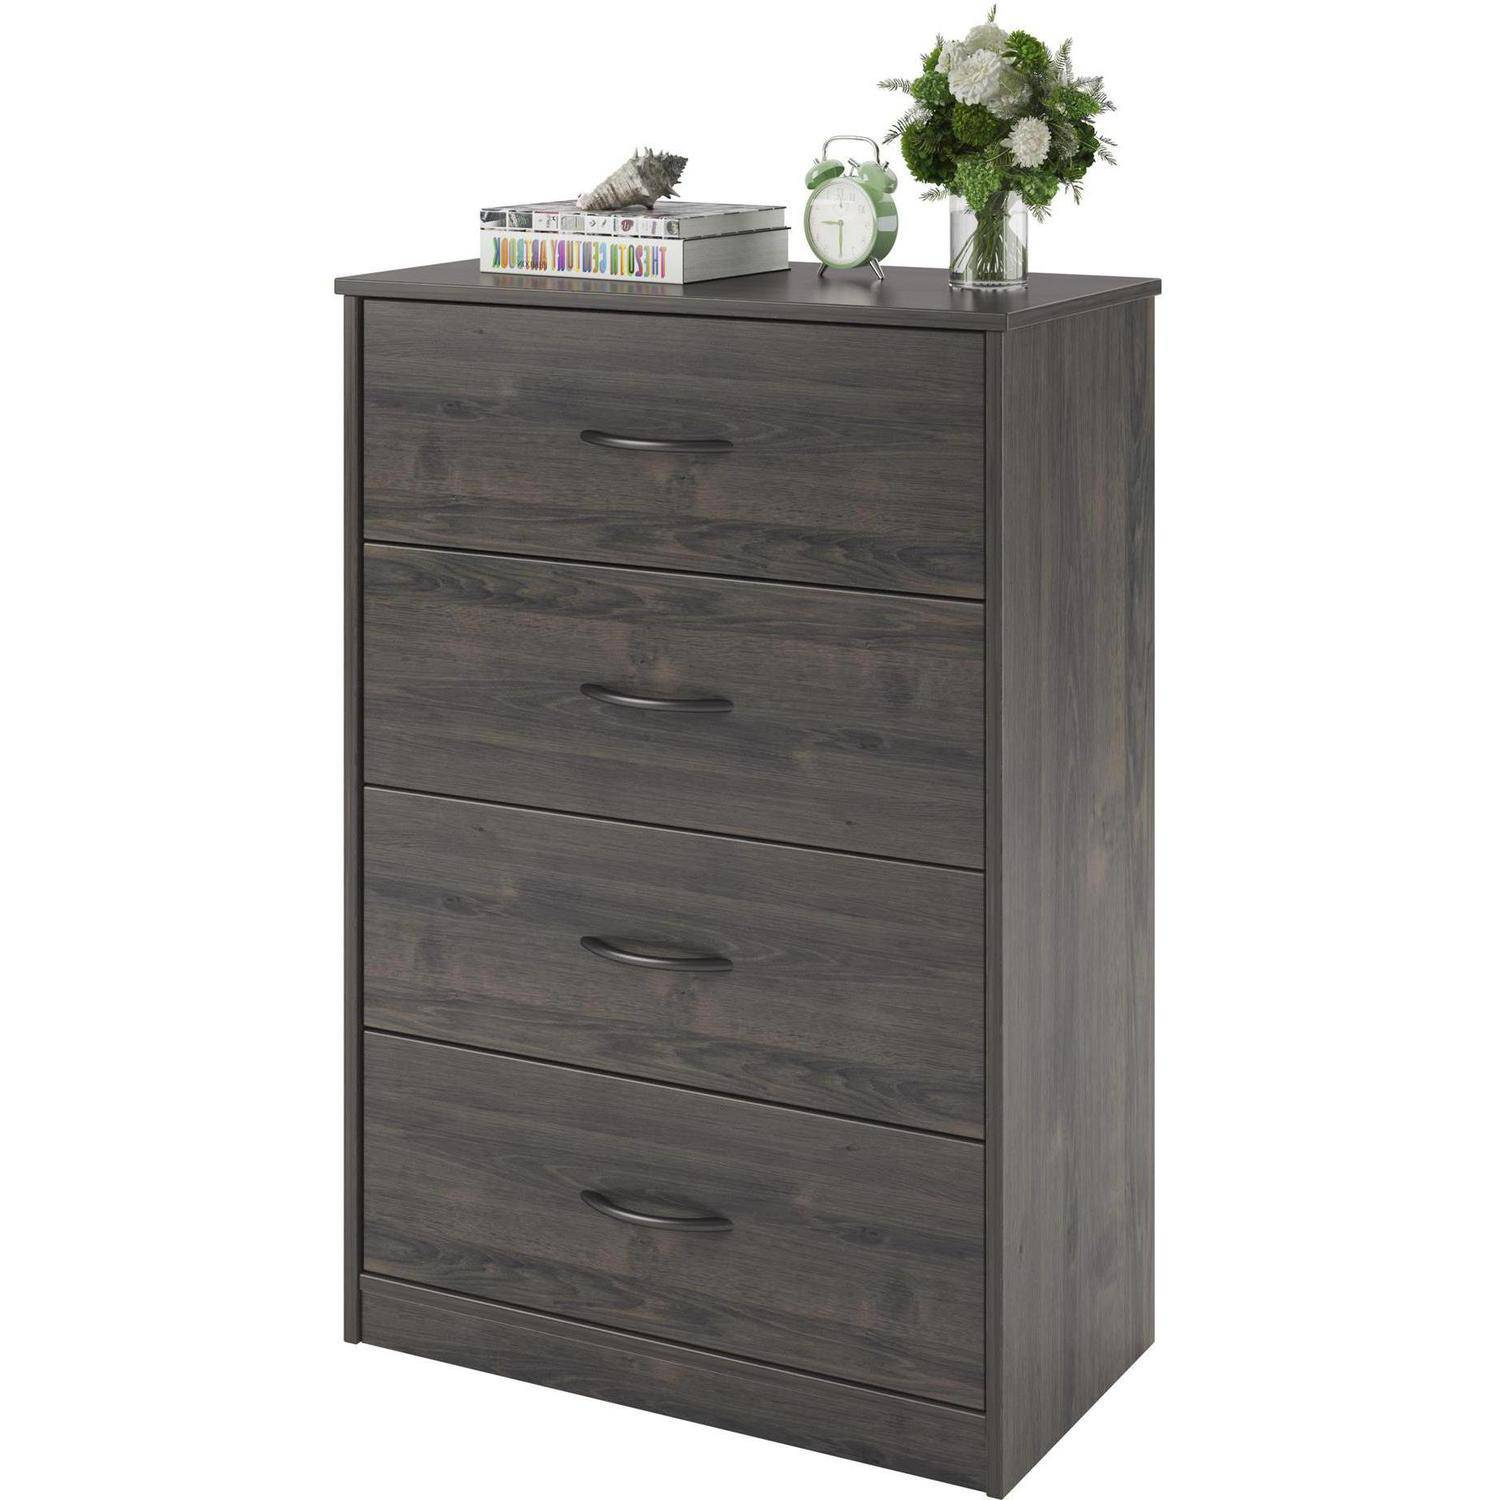 Bedroom Storage Dresser Chest 4 Drawer Modern Wood Furniture Gray Rodeo Oak Ebay